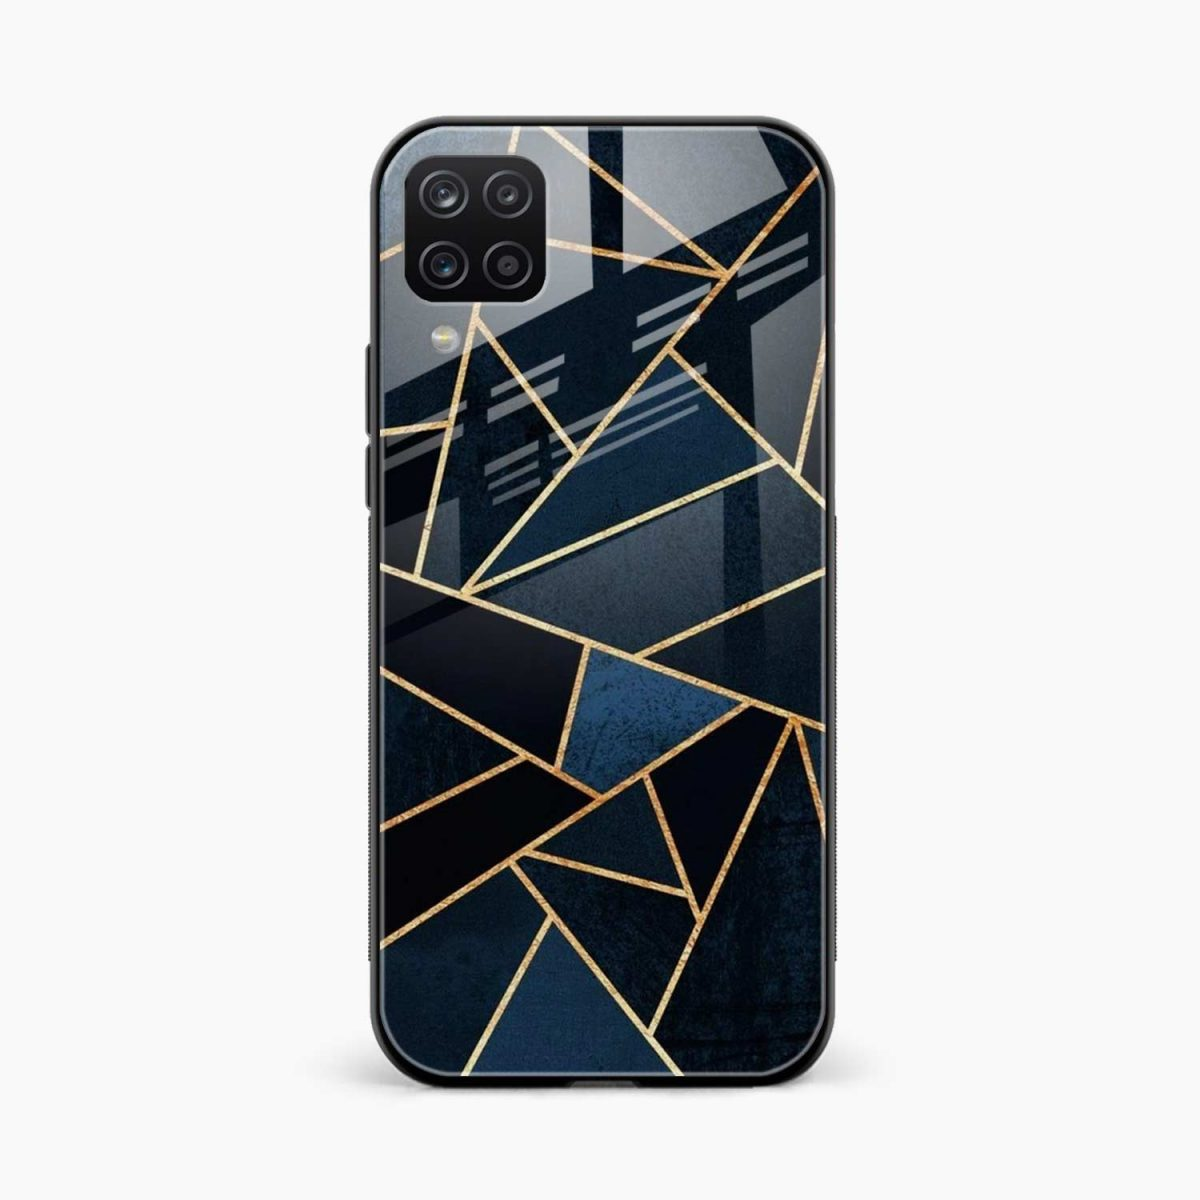 zig zag pattern front view samsung galaxy a12 back cover